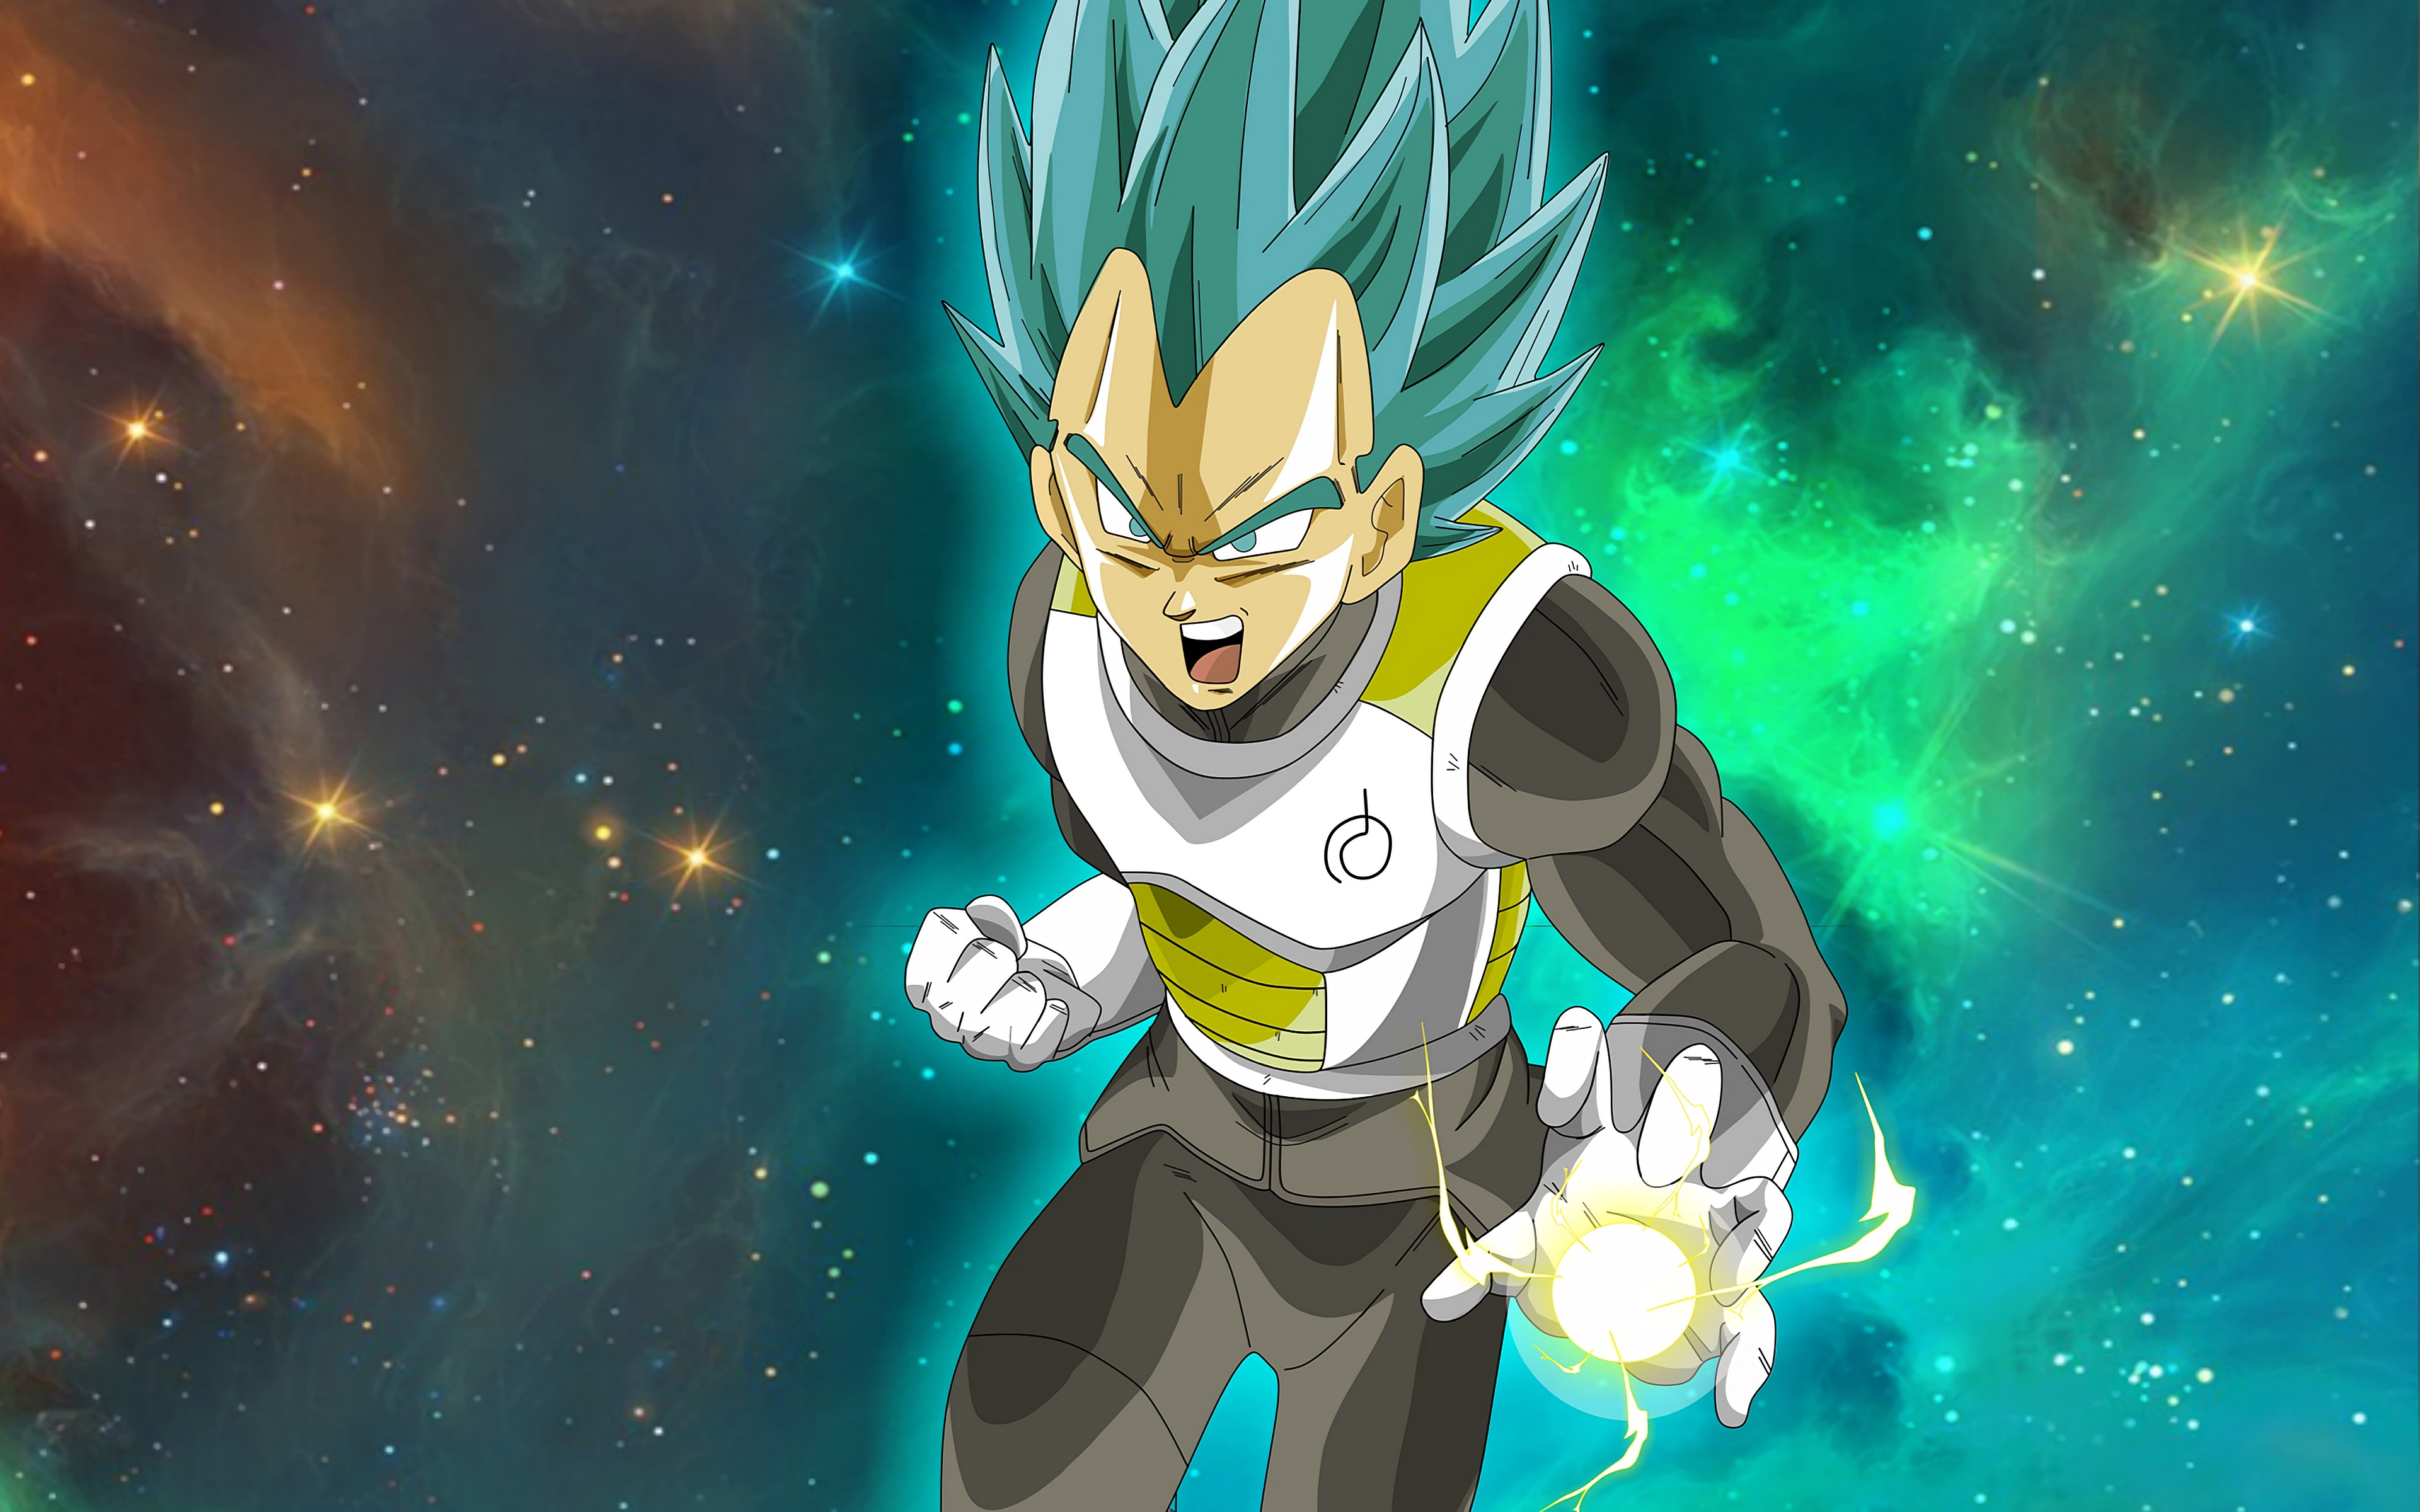 Vegeta Wallpapers full HD 3840x2400